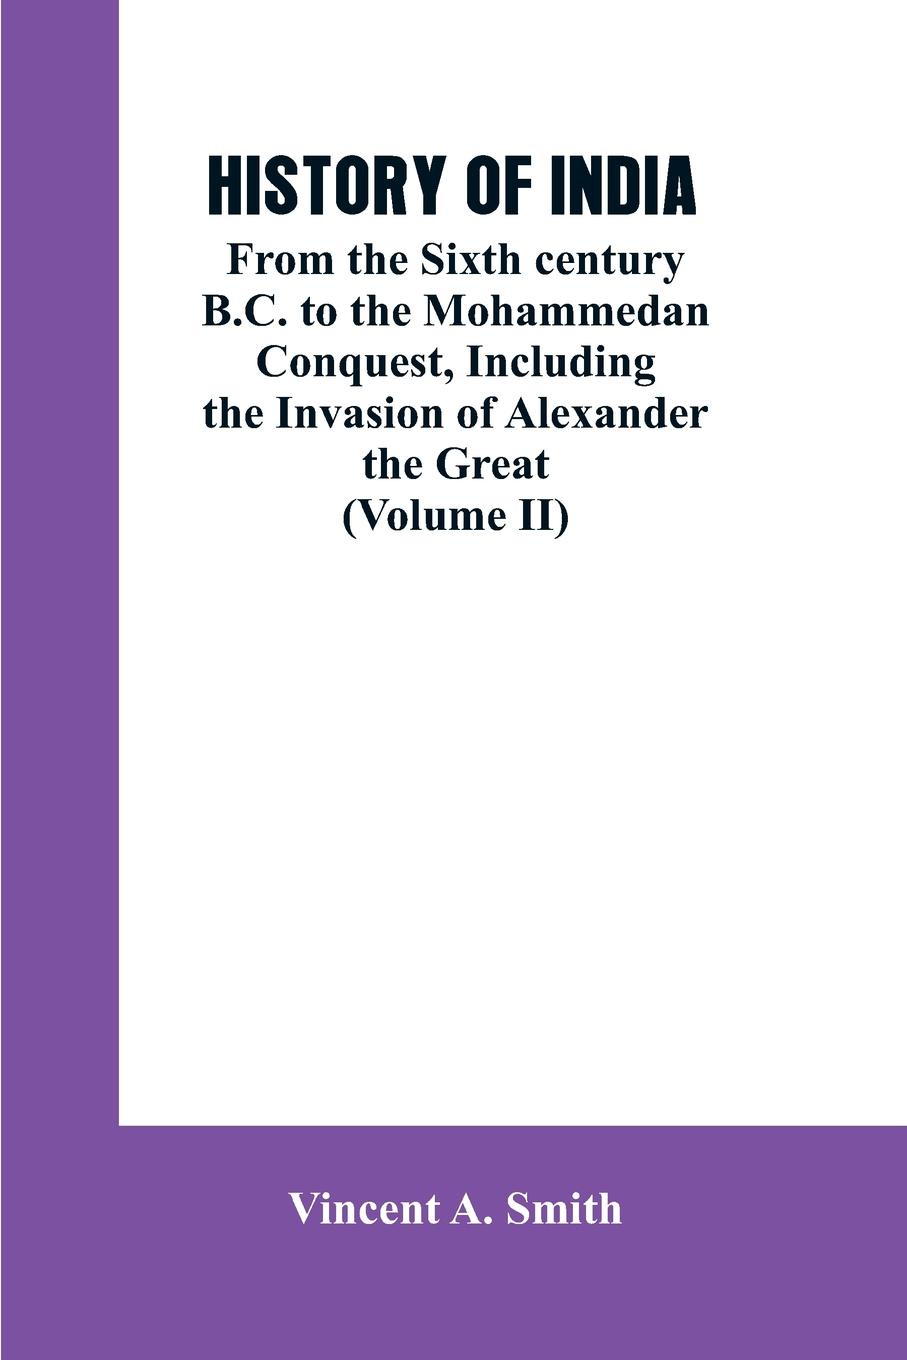 купить Vincent A. Smith HISTORY OF INDIA. From the Sixth century B.C. to the mohammedon conquest, including the invasion of Alexander the great (Volume II) по цене 1277 рублей